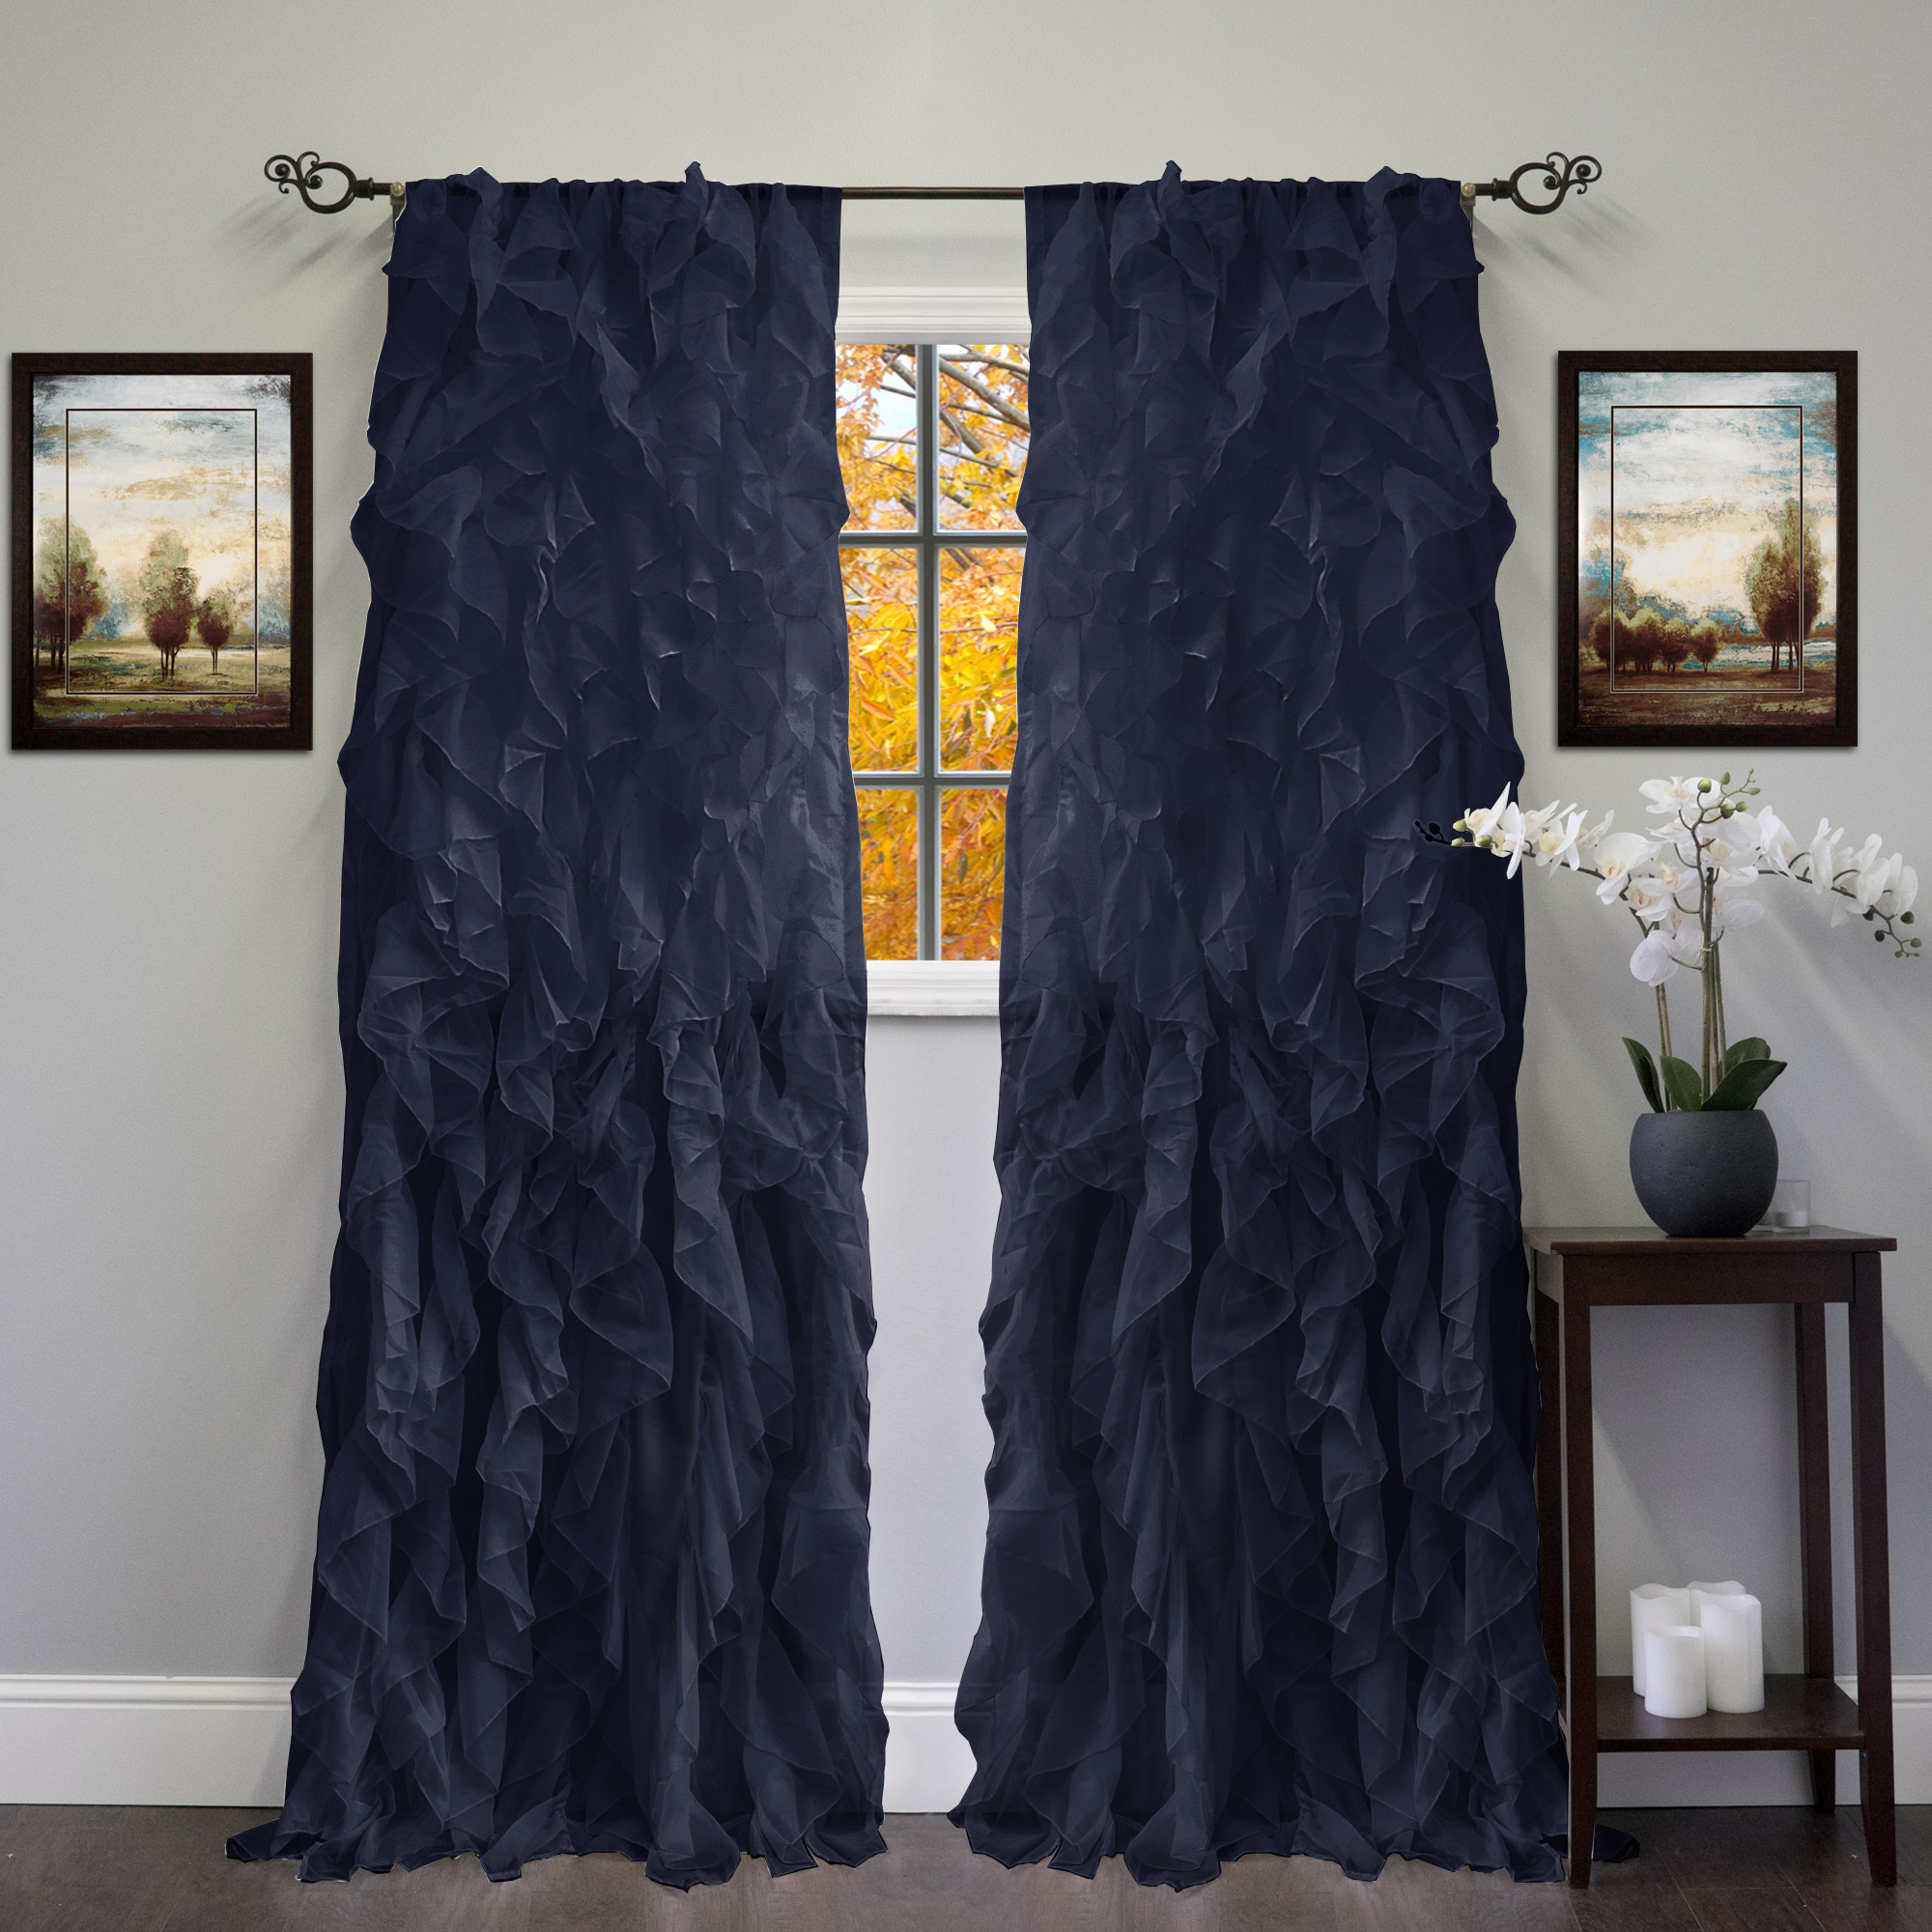 "Widely Used Sheer Voile Ruffled Tier Window Curtain Panels Regarding Chic Sheer Voile Vertical Ruffled Tier Window Curtain Single Panel 50"" X 108"" (View 4 of 20)"